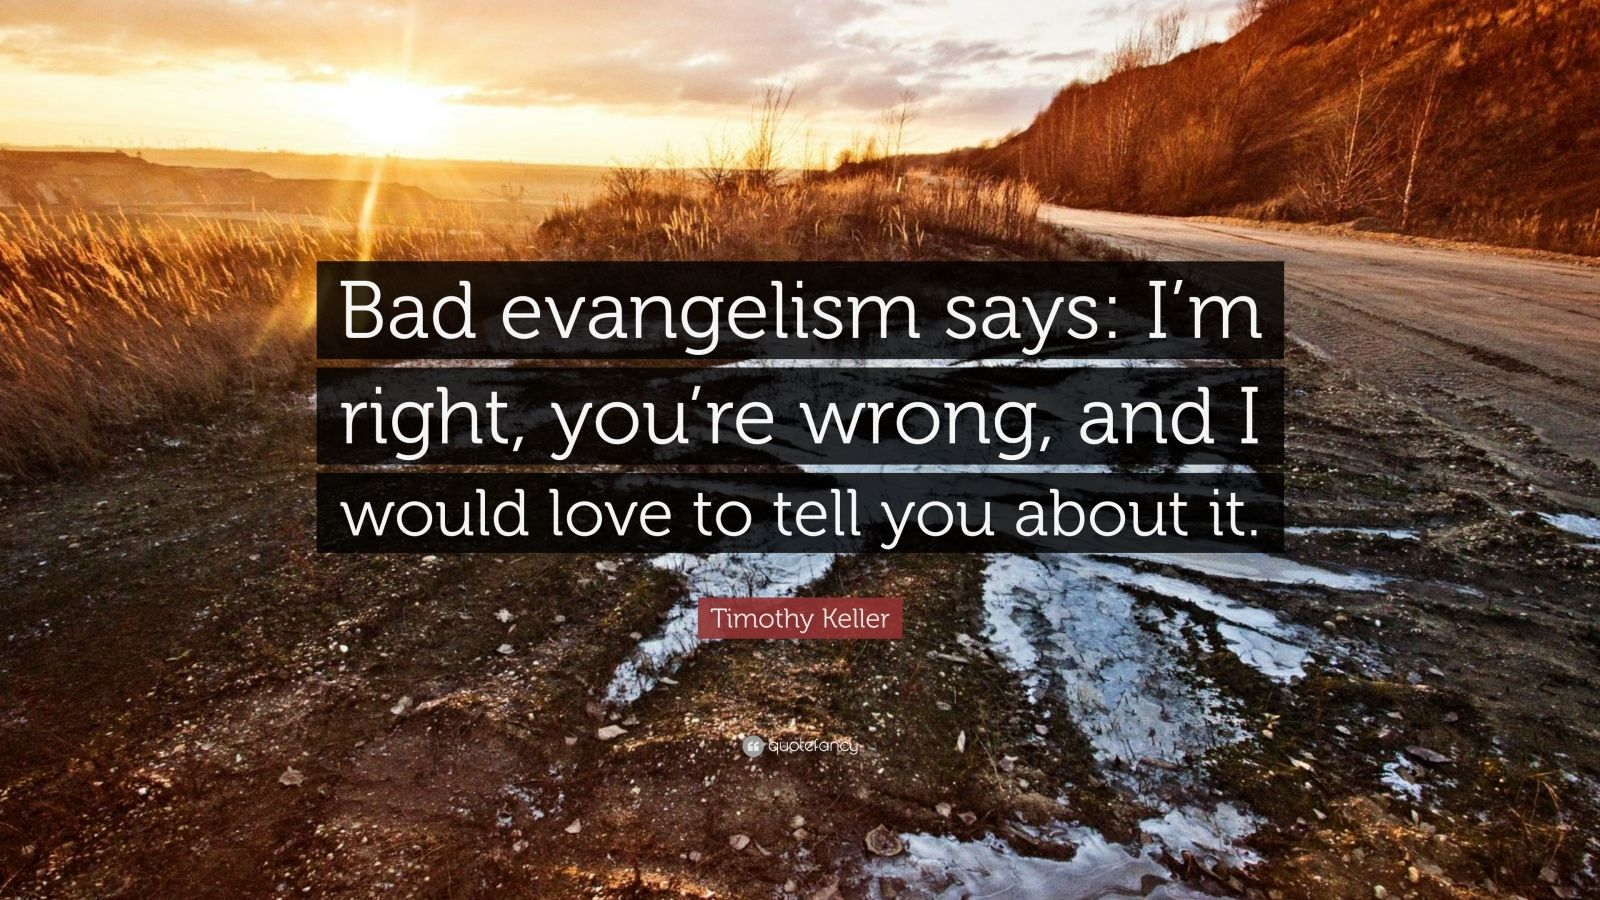 """Timothy Keller Quote: """"Bad evangelism says: I'm right, you're wrong, and I would love to tell you about it."""""""